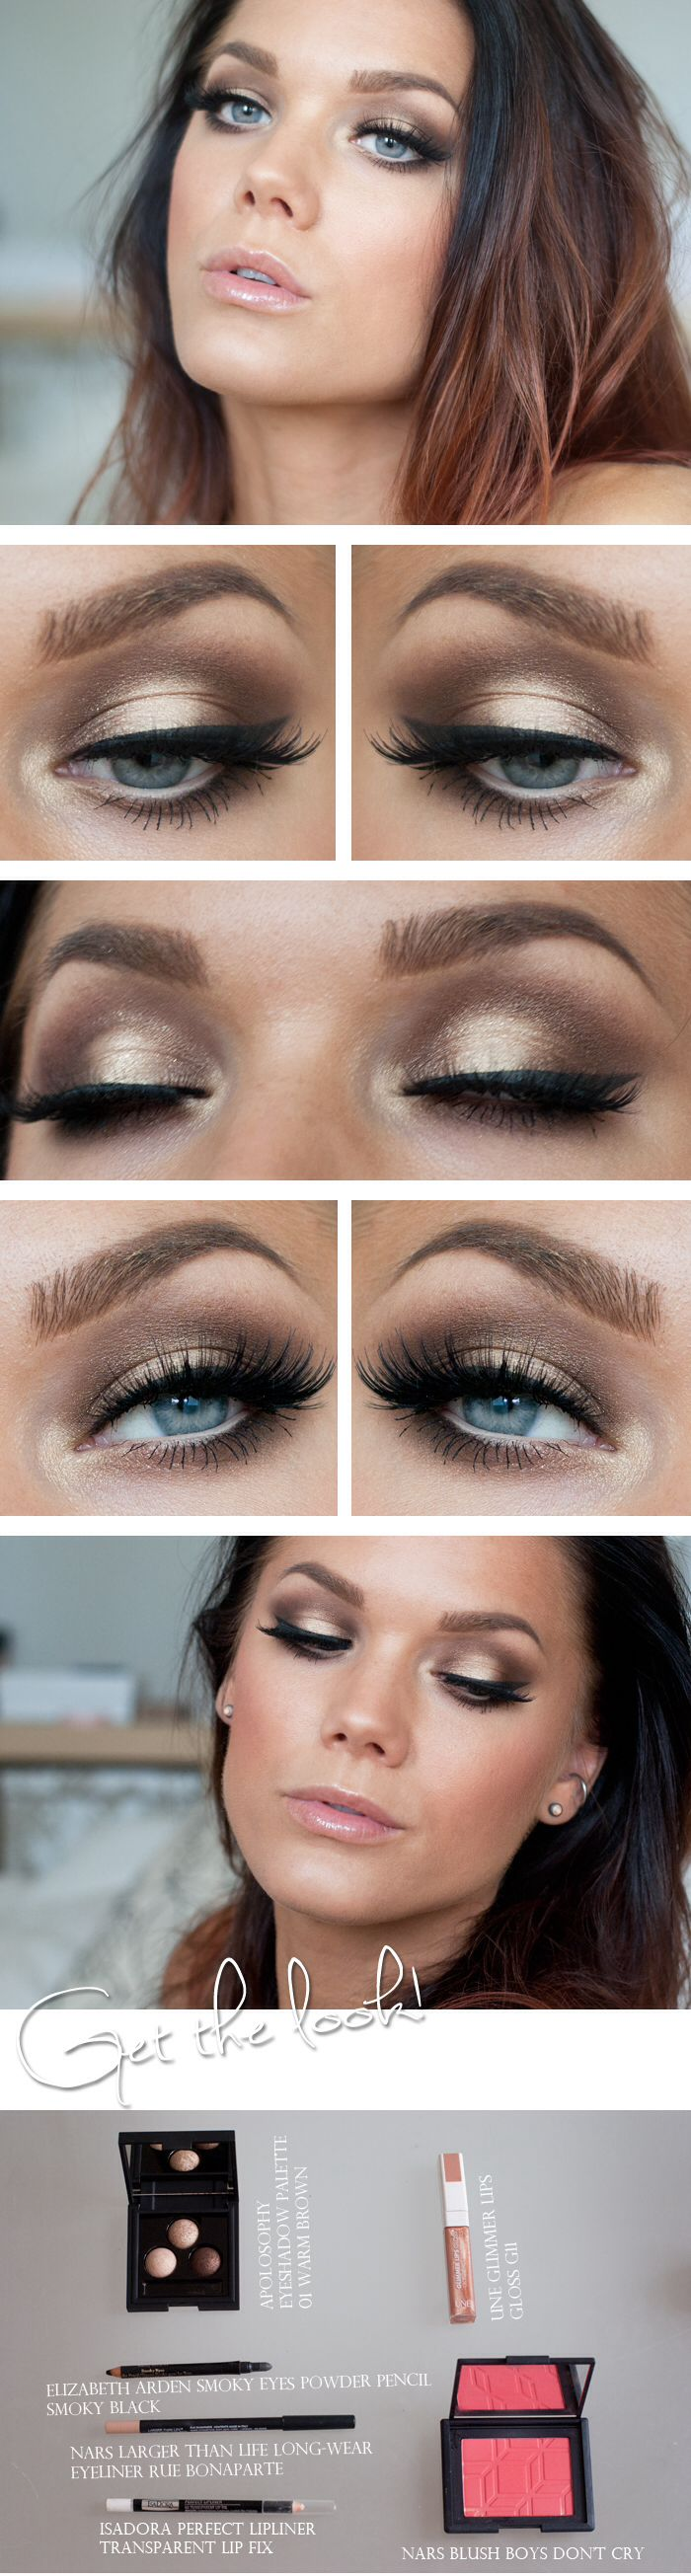 Love These Champagne eyes!  - Perfect for tomorrow! Memorial Day & Fleet week!